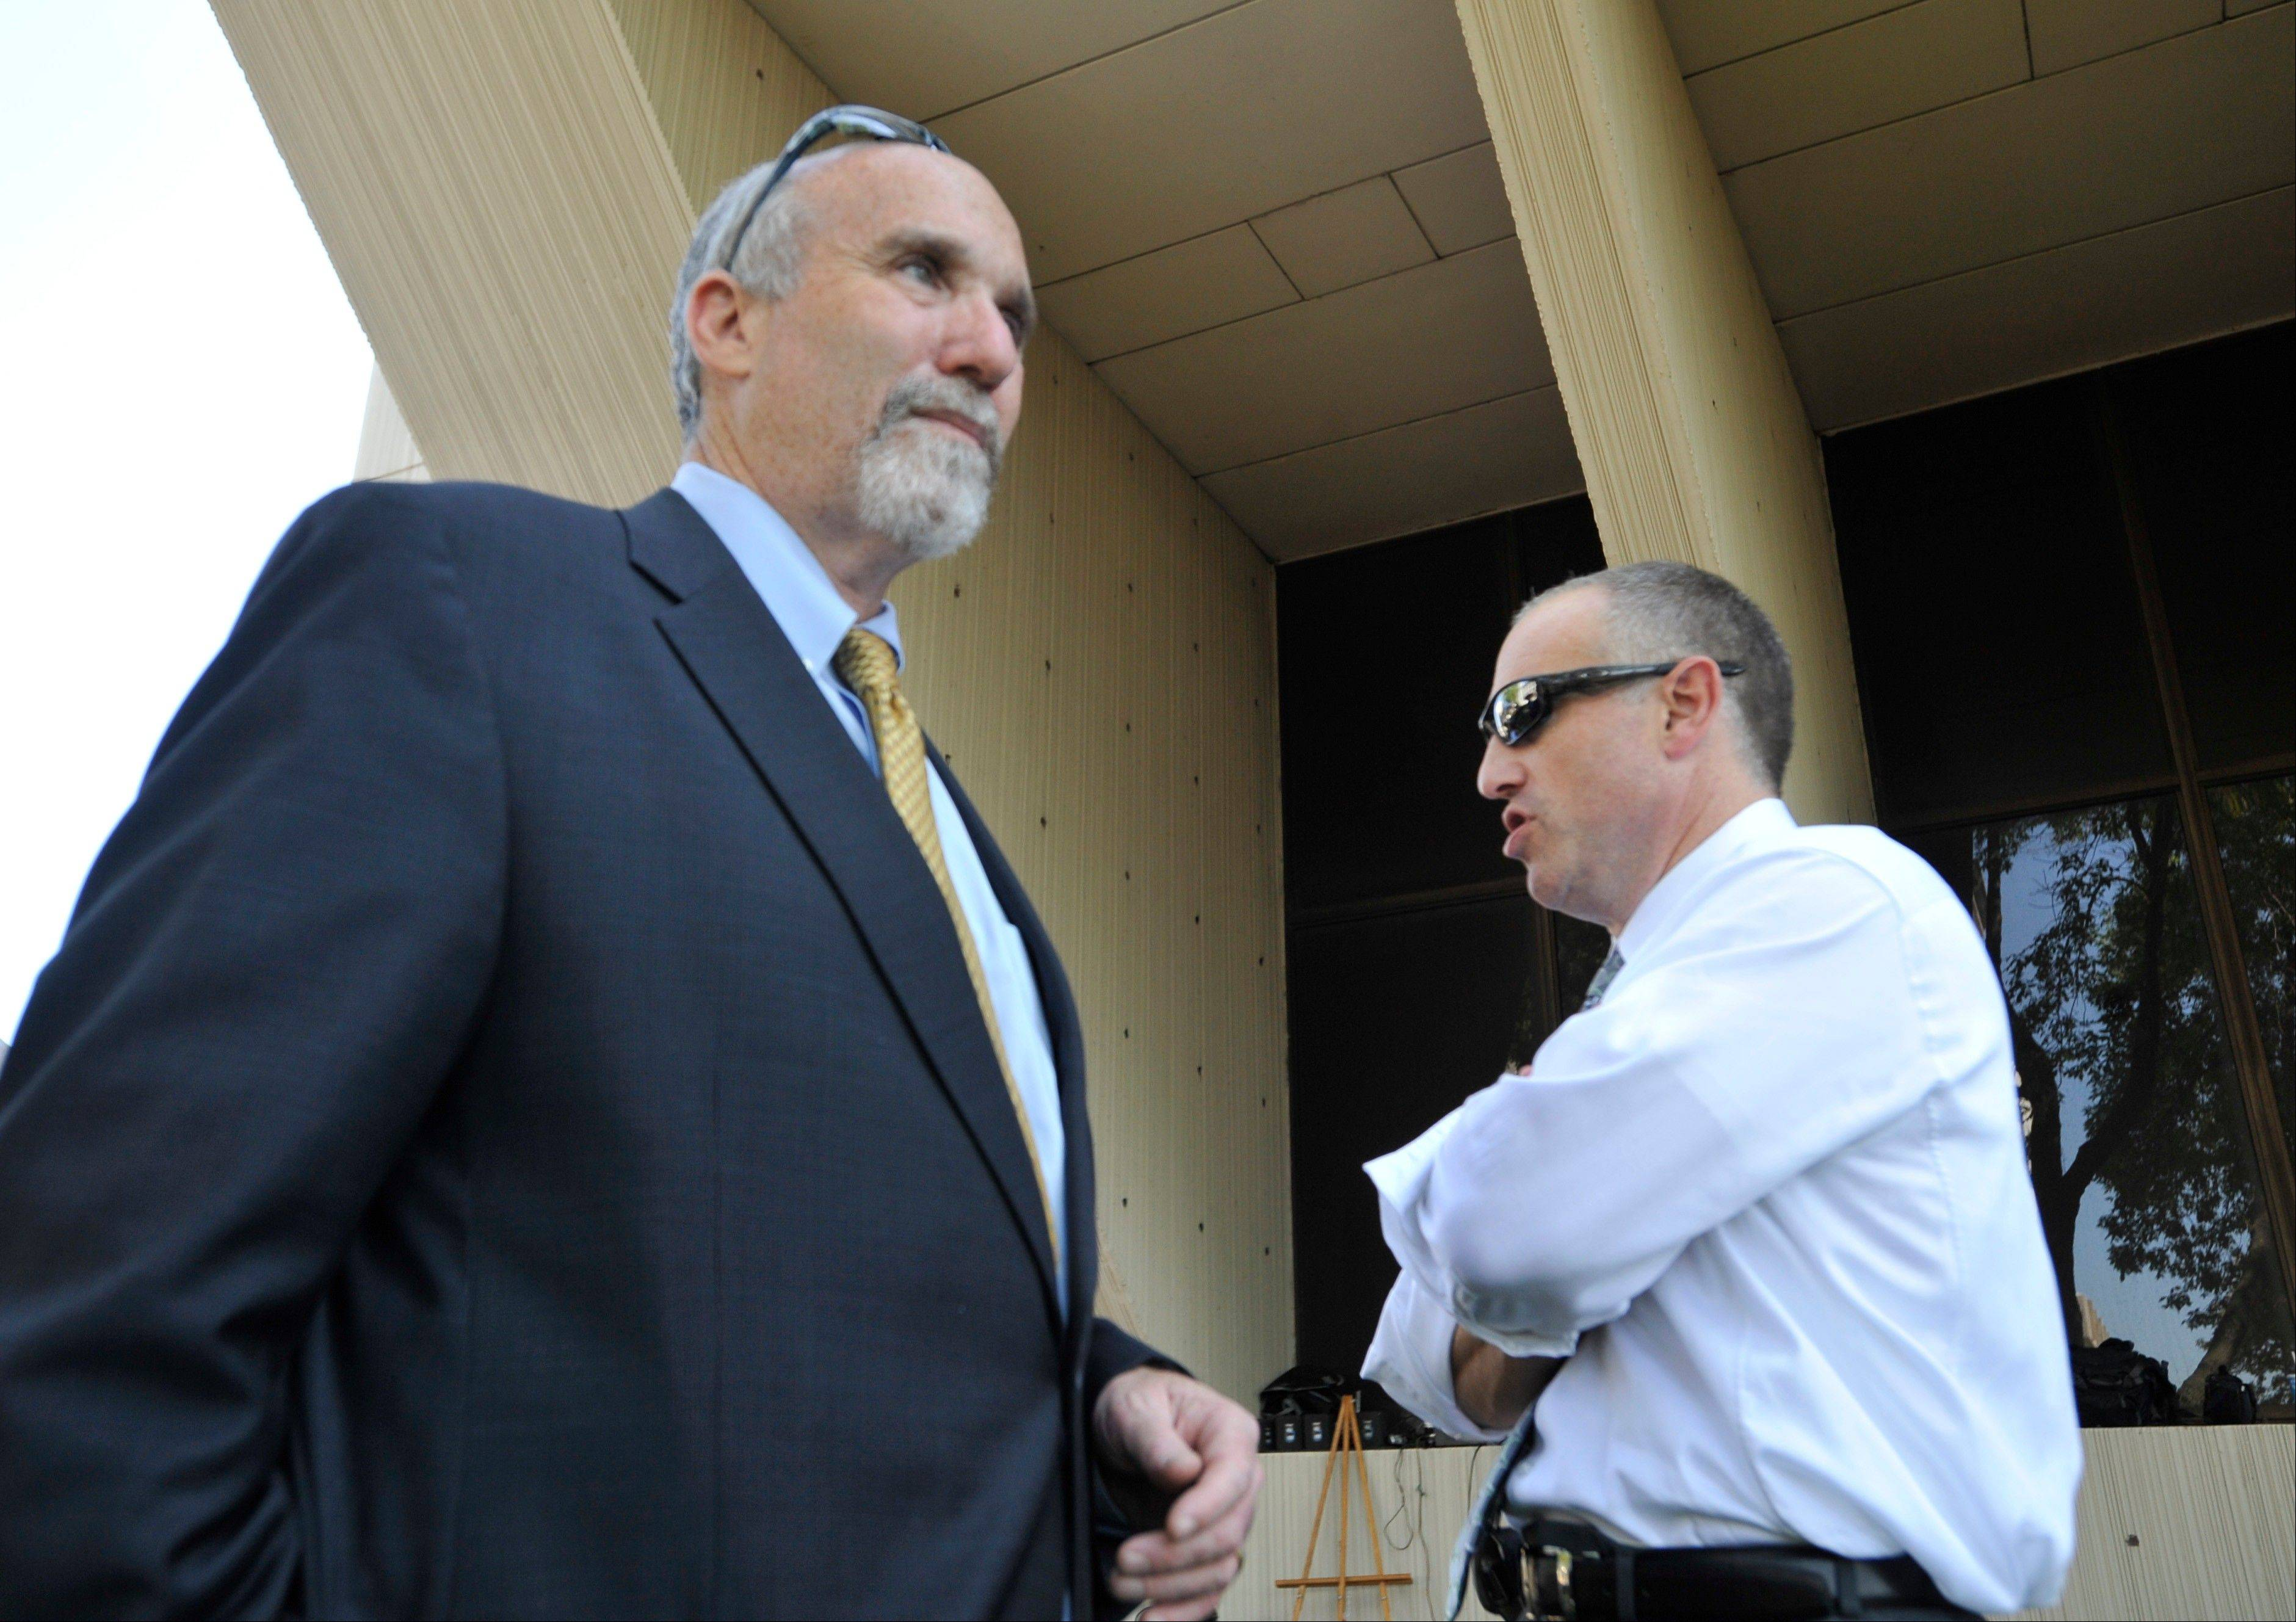 Attorneys for former Bolingbrook police officer Drew Peterson, Joel Brodsky and Steven Greenberg, confer outside the Will County Courthouse during the second day of jury deliberations in Peterson's murder trial, Thursday, Sept. 6, 2012, in Joliet, Ill. The jury reconvened Thursday after failing to reach a verdict during more than eight hours of deliberations Wednesday.